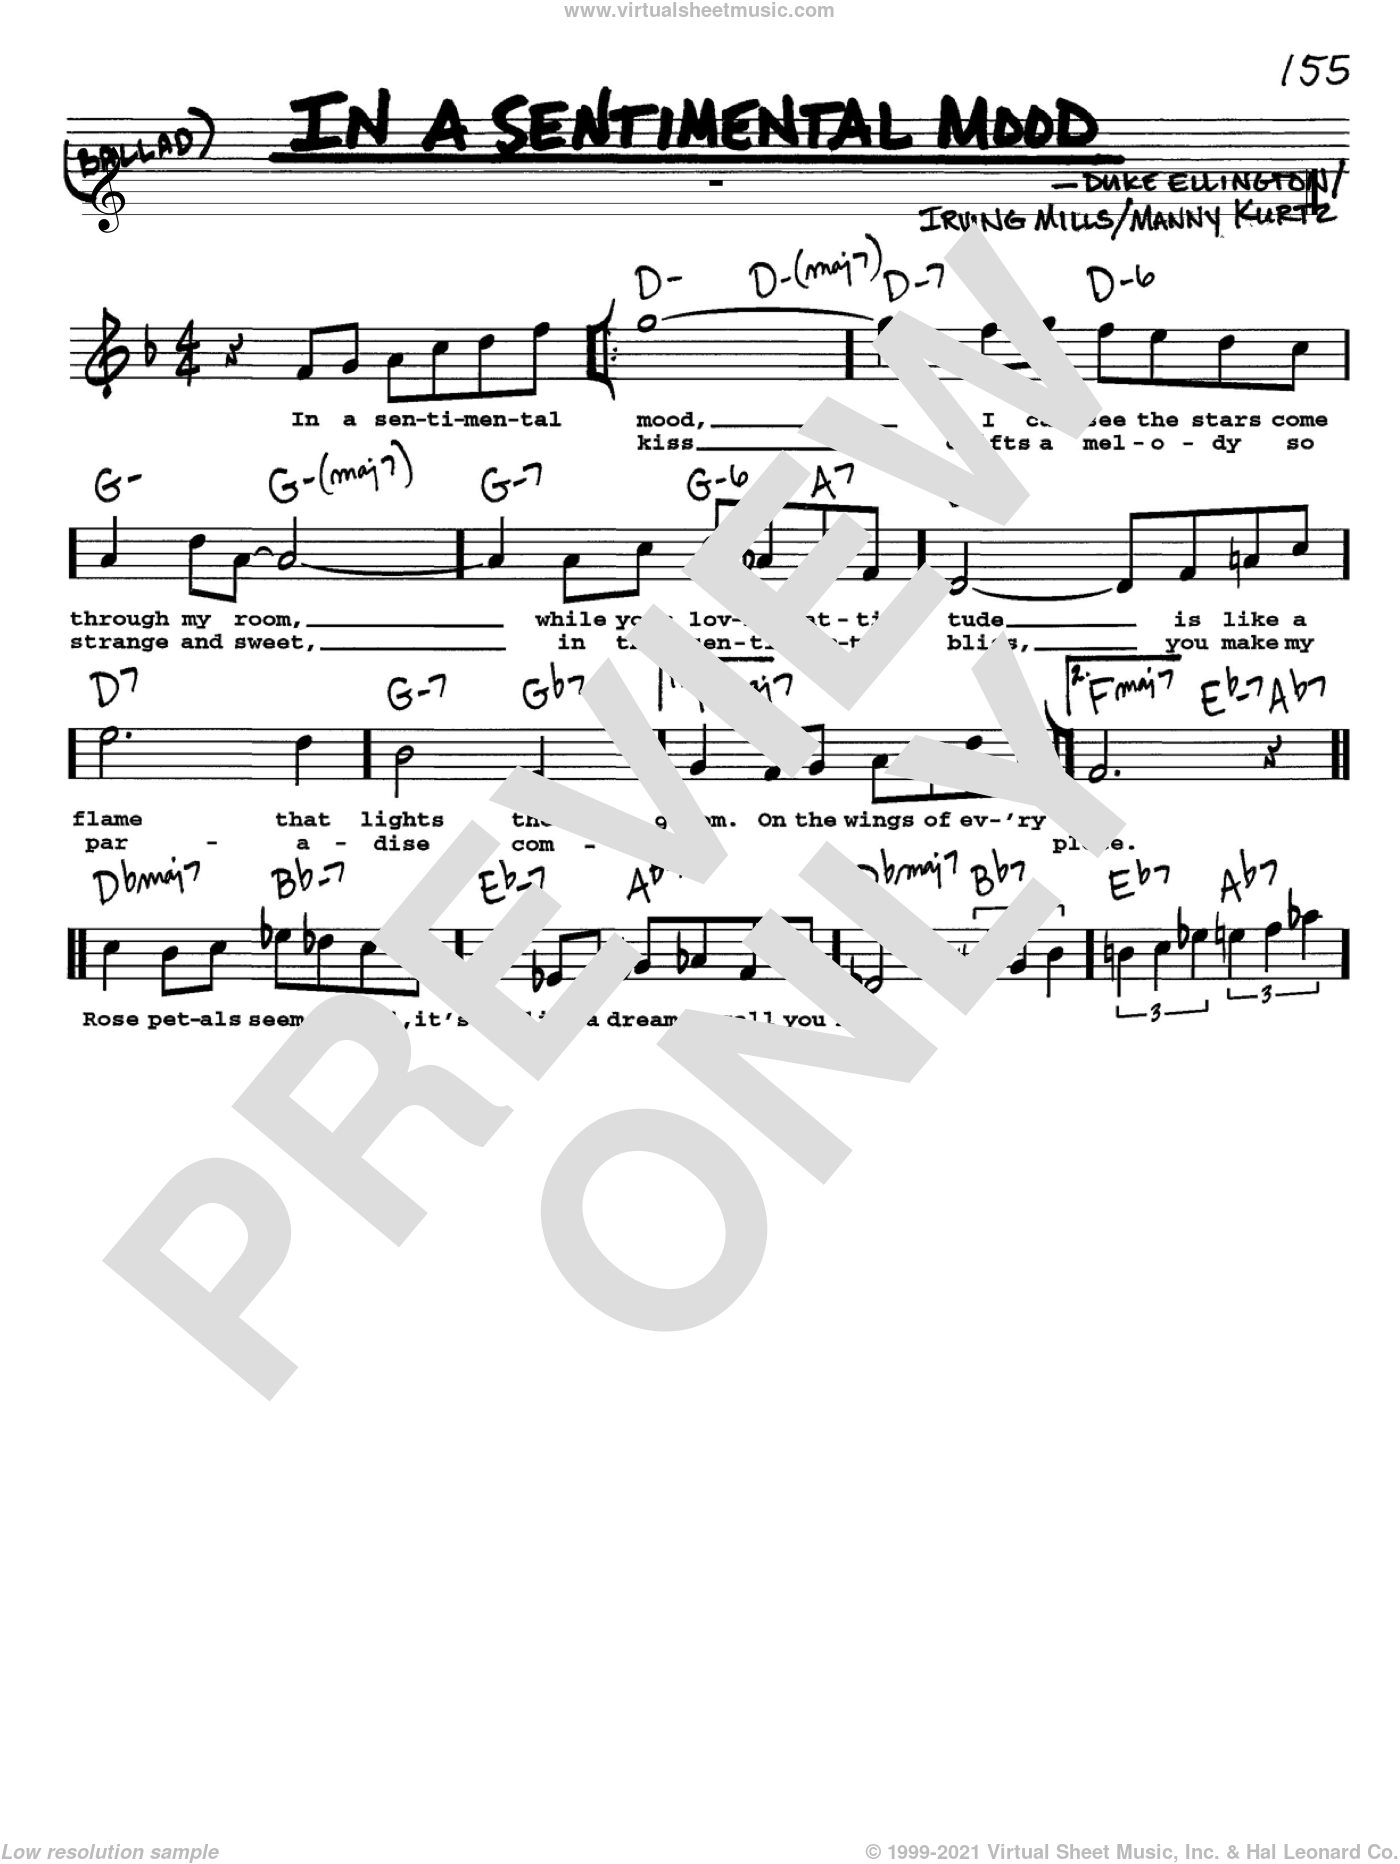 In A Sentimental Mood sheet music for voice and other instruments  by Duke Ellington, Irving Mills and Manny Kurtz, intermediate skill level